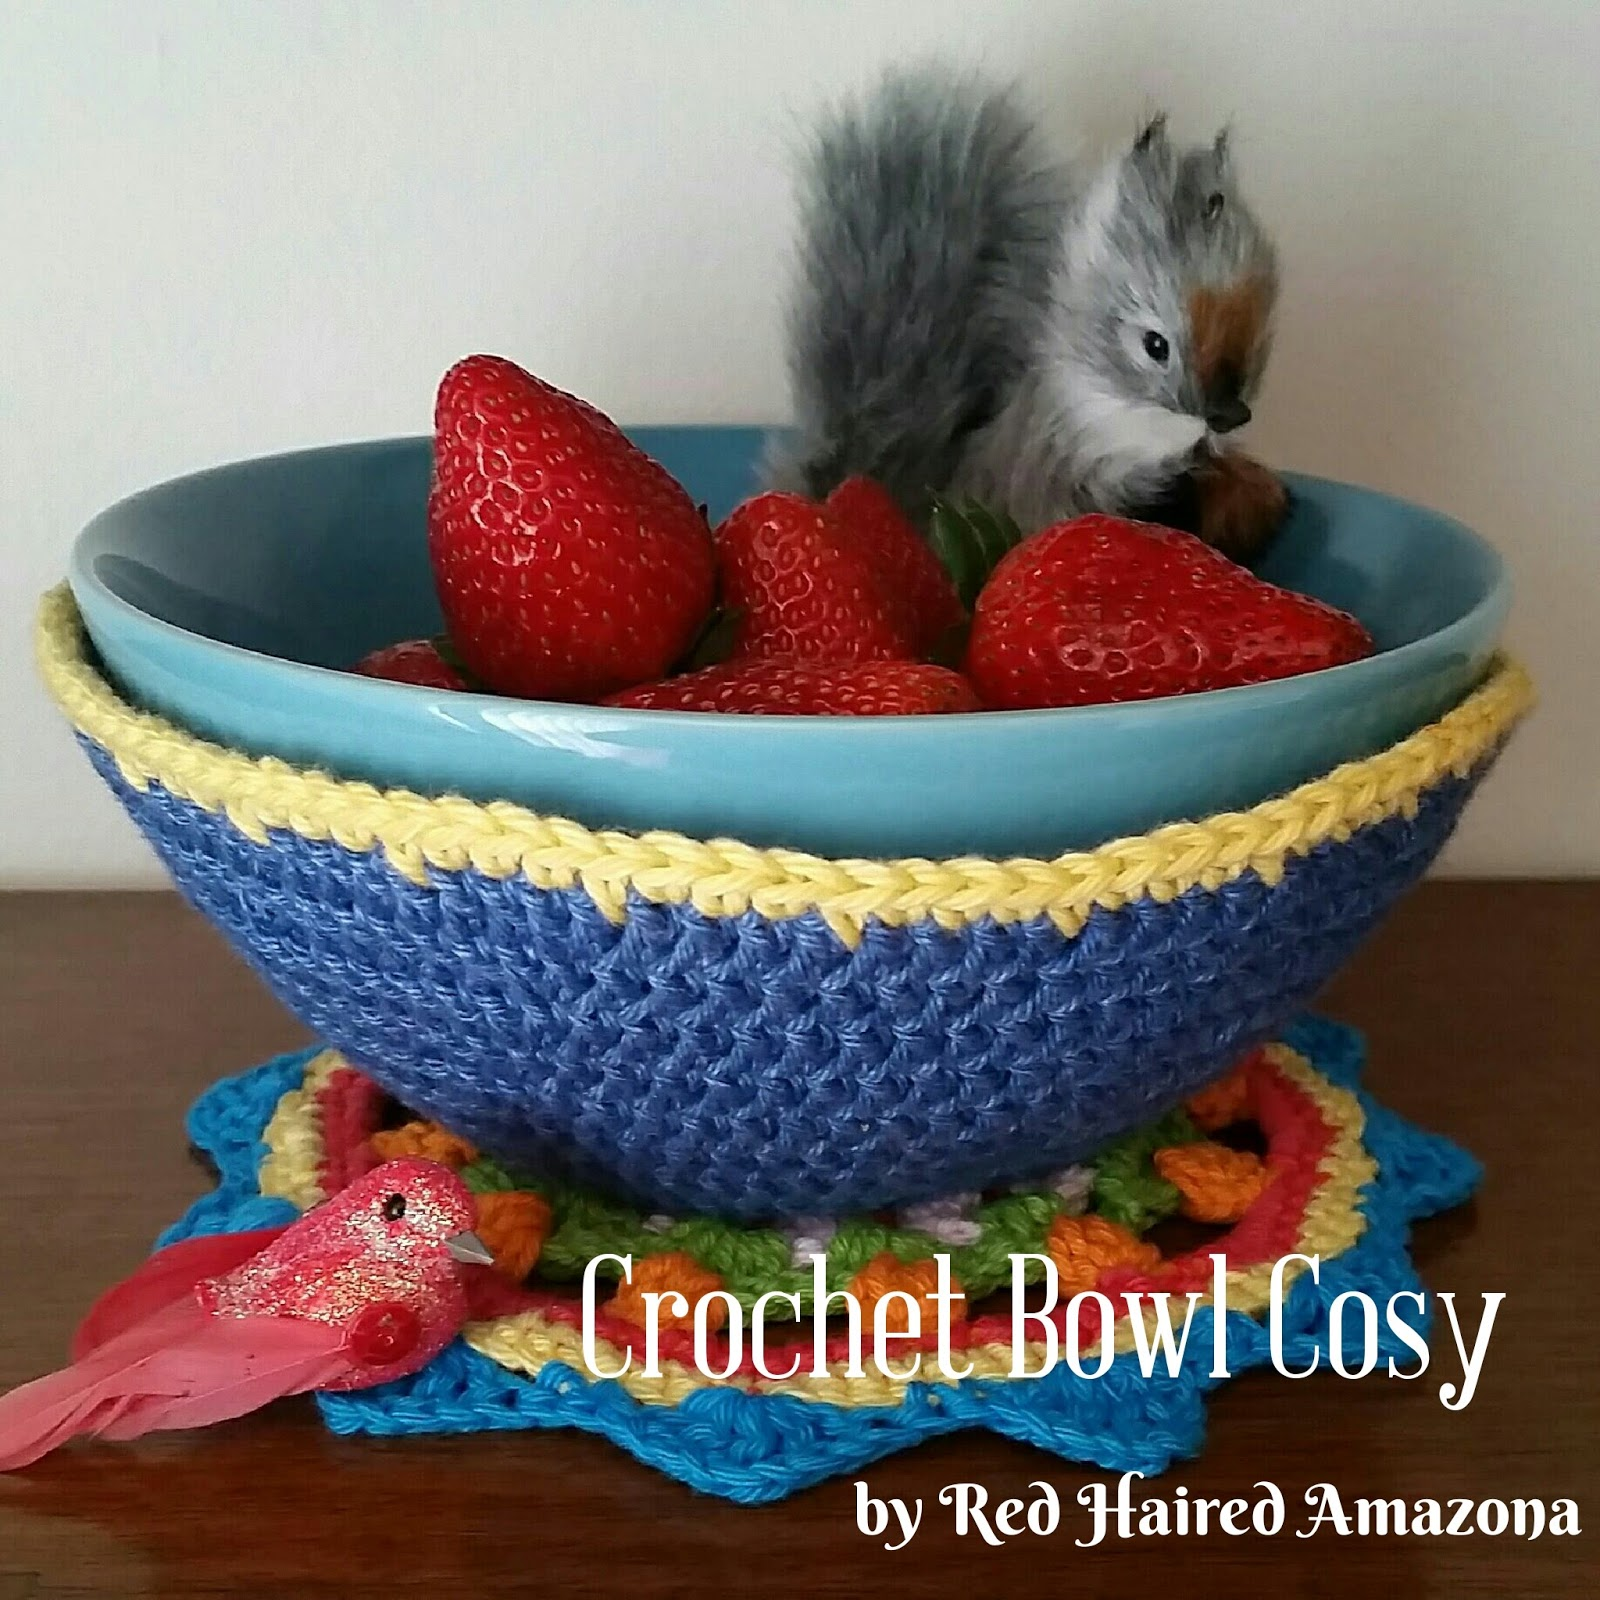 Red Haired Amazona: Crochet Bowl Cosy Free Pattern